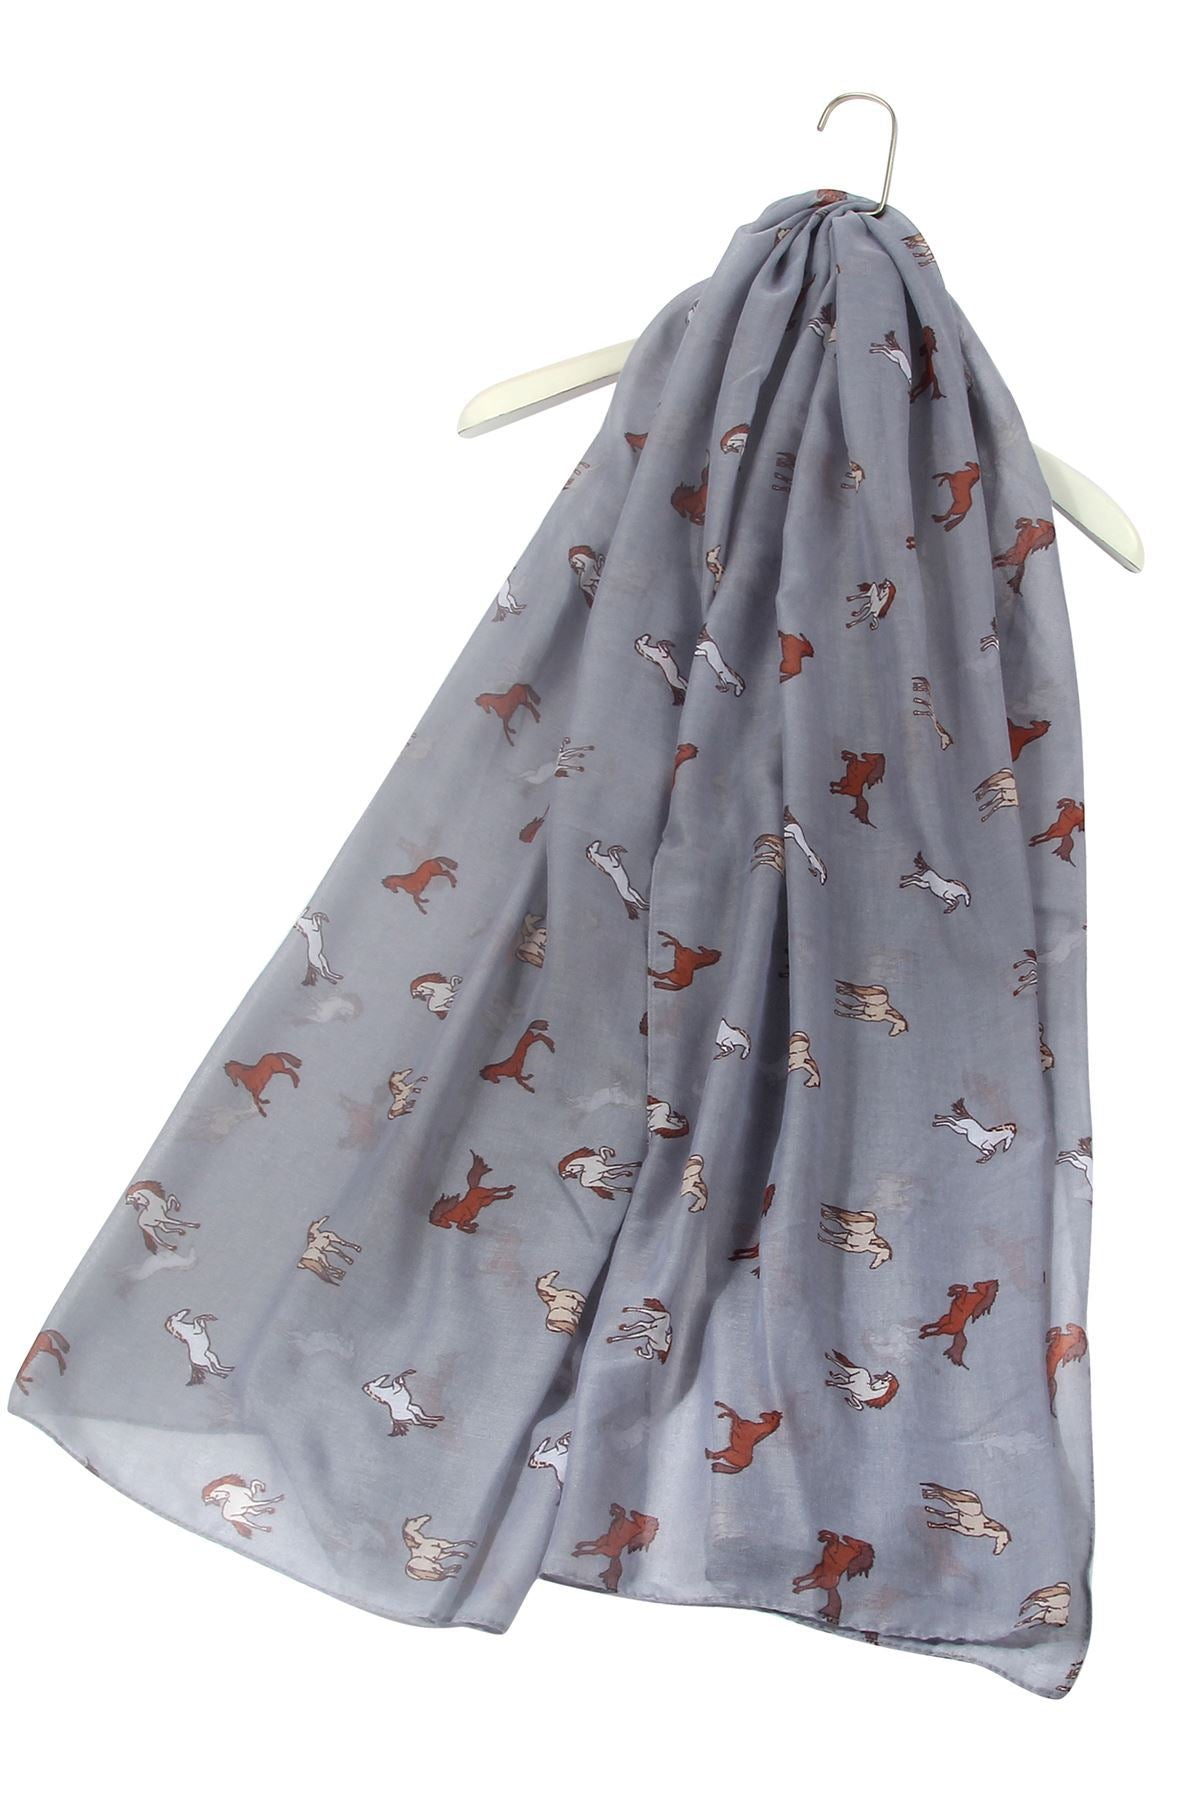 "X Galloping Horse Print Scarf( Grey) ""Floral scarves"""